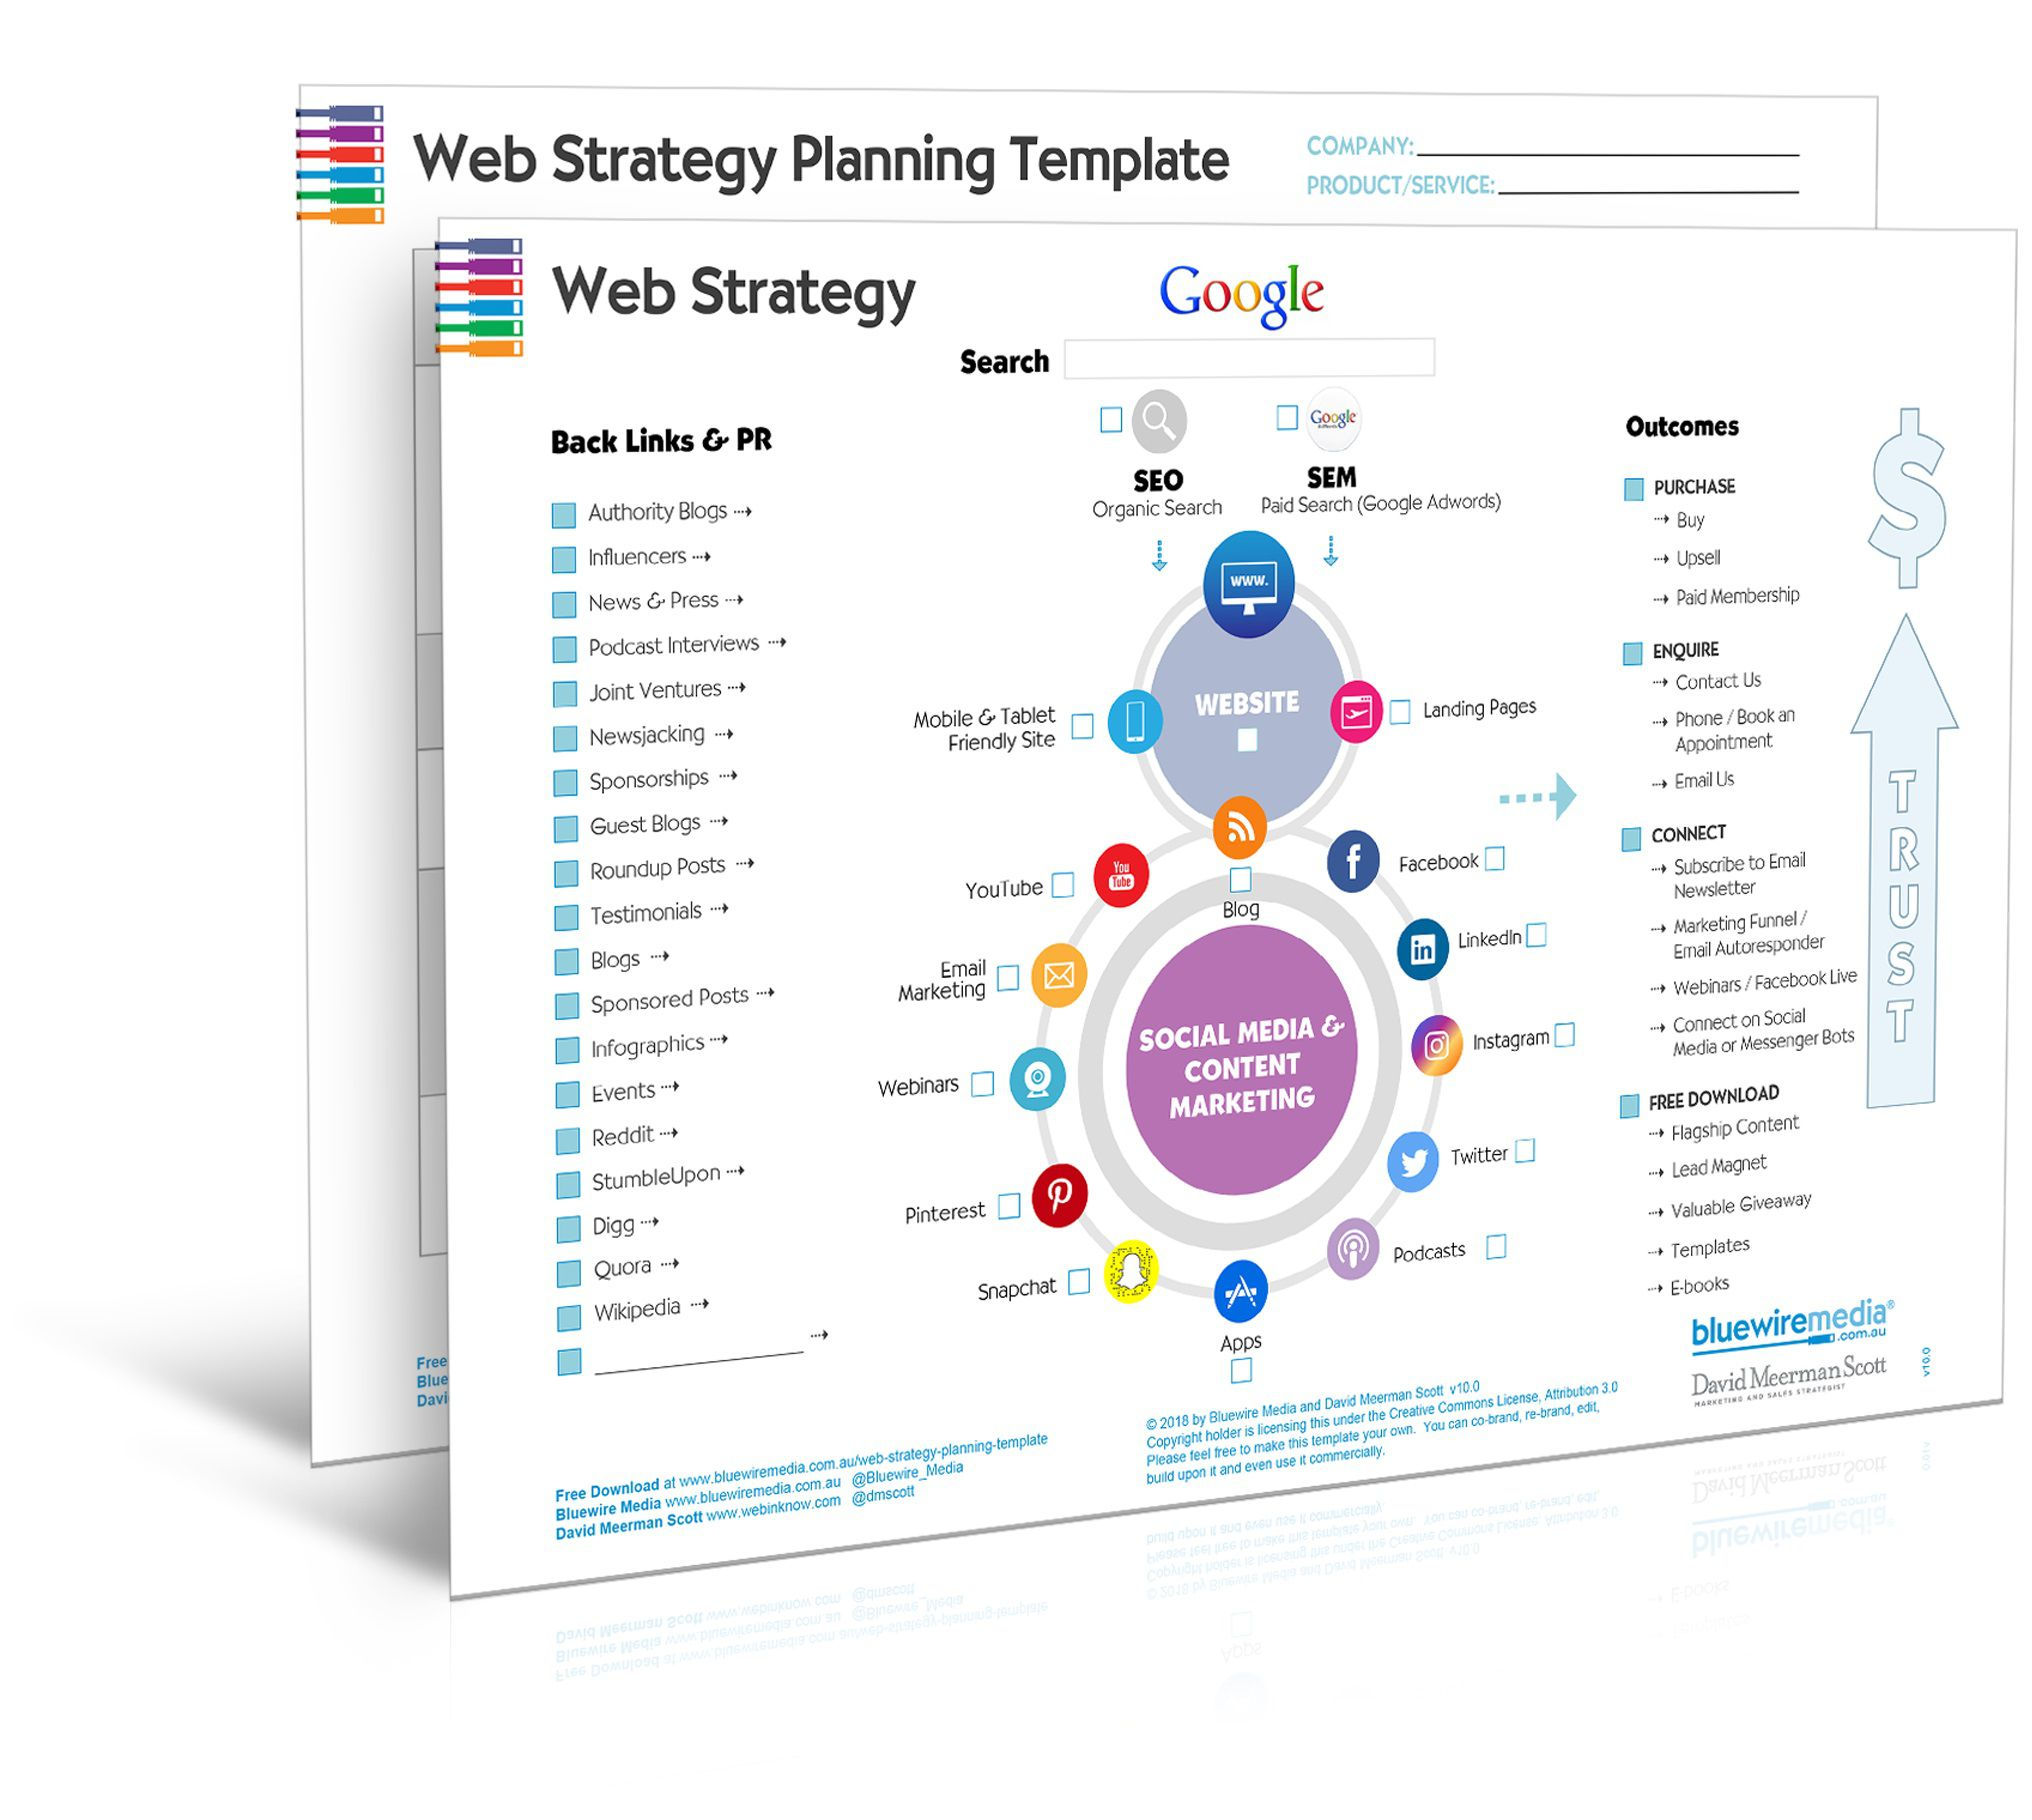 009 Exceptional Digital Marketing Strategy Template Picture  2019 Pdf Doc PlanningFull